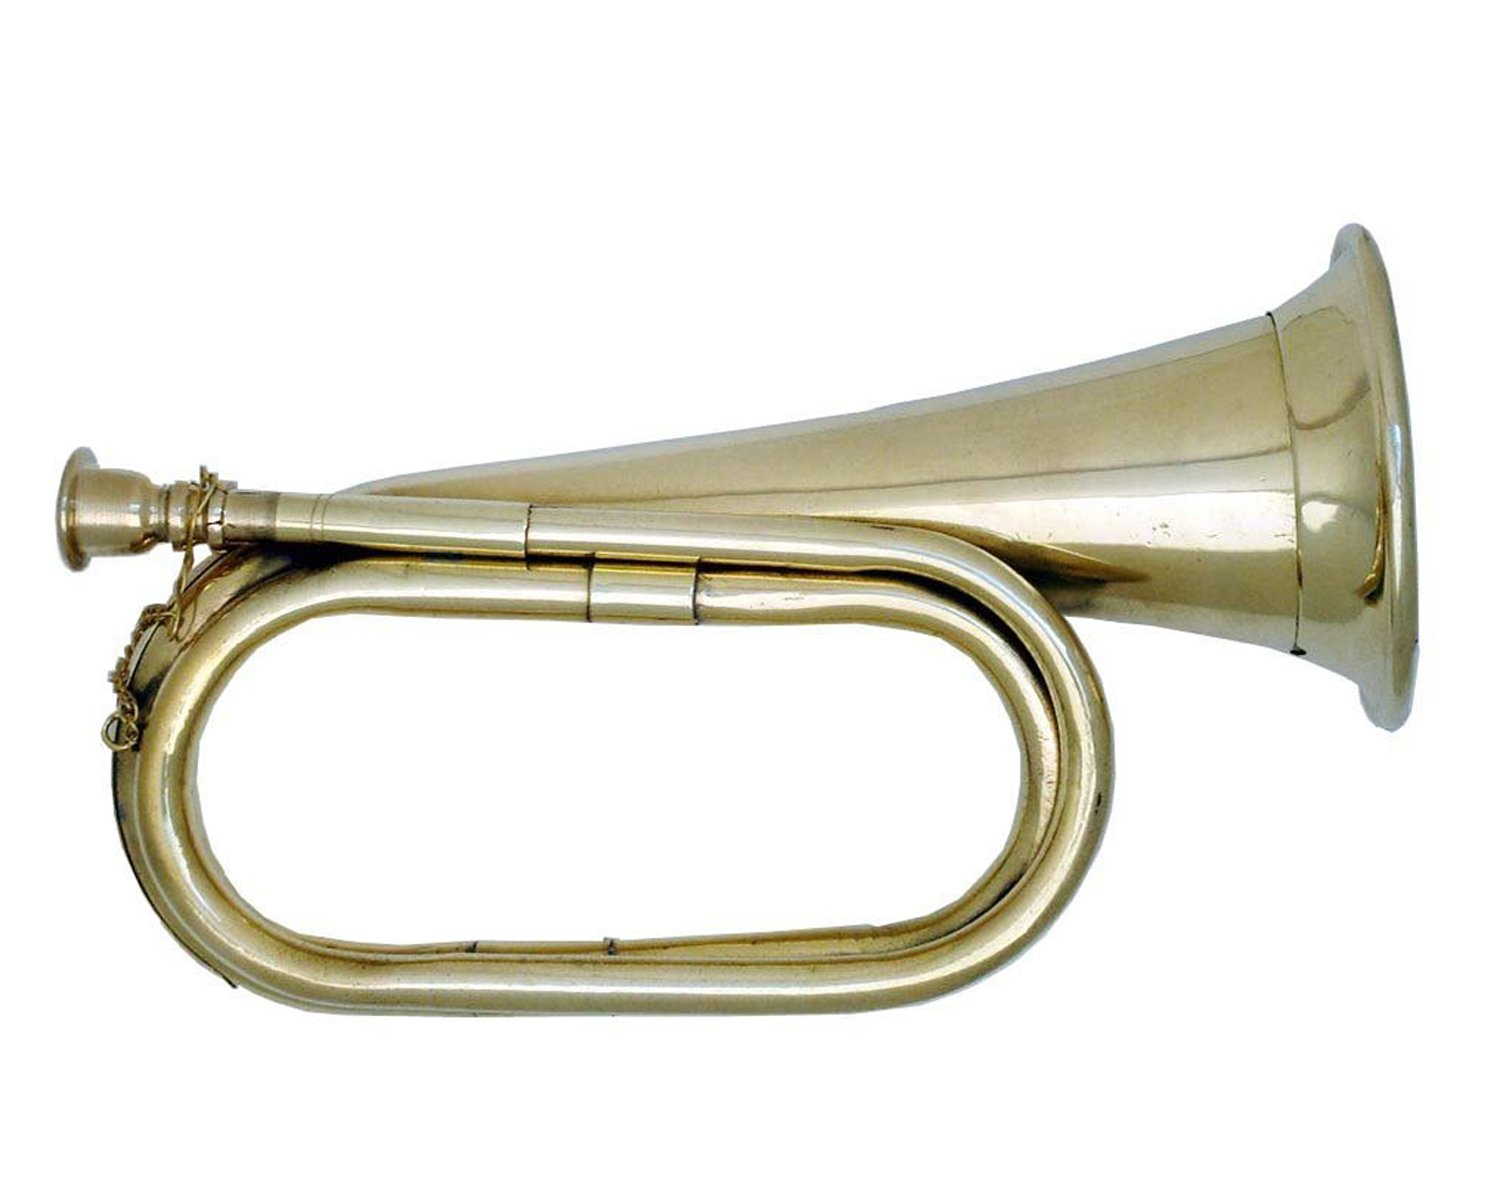 Global Art World New Made Of Solid Brass Stylish Civil War Era Bugle US Military Cavalry Horn MI 01